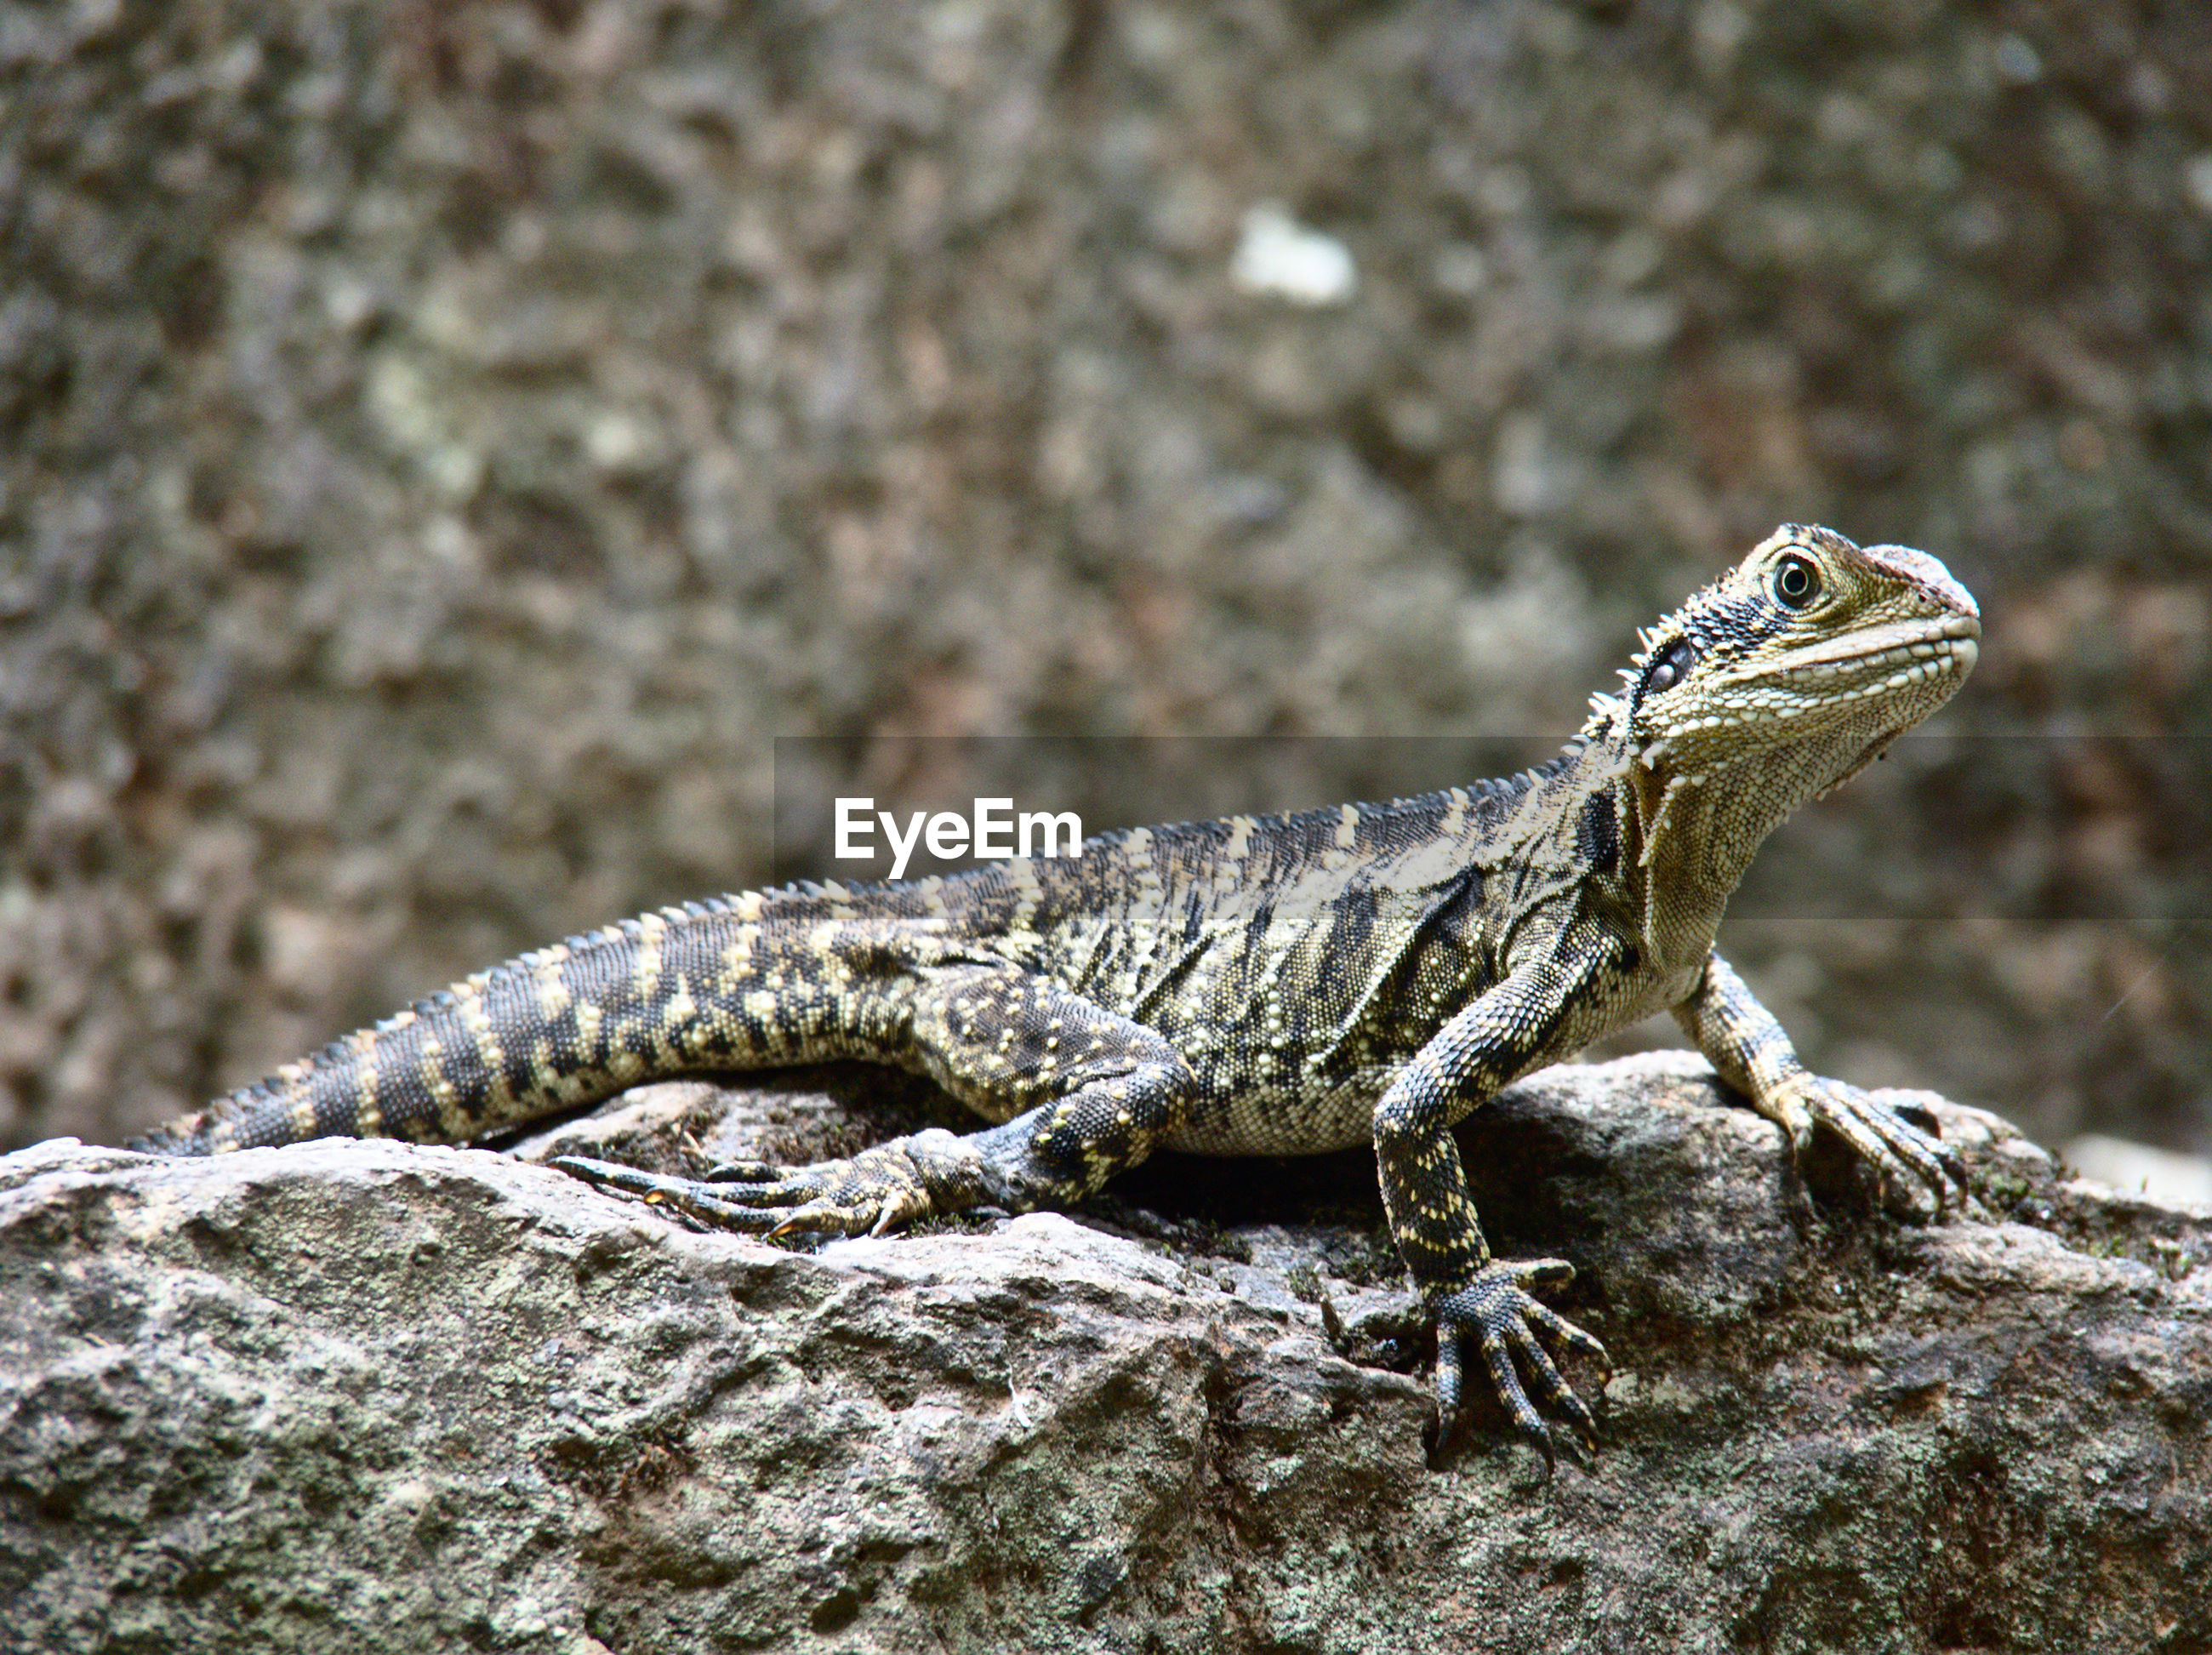 animal themes, animals in the wild, one animal, wildlife, focus on foreground, reptile, lizard, close-up, side view, rock - object, full length, nature, outdoors, day, no people, selective focus, zoology, perching, bird, animal markings